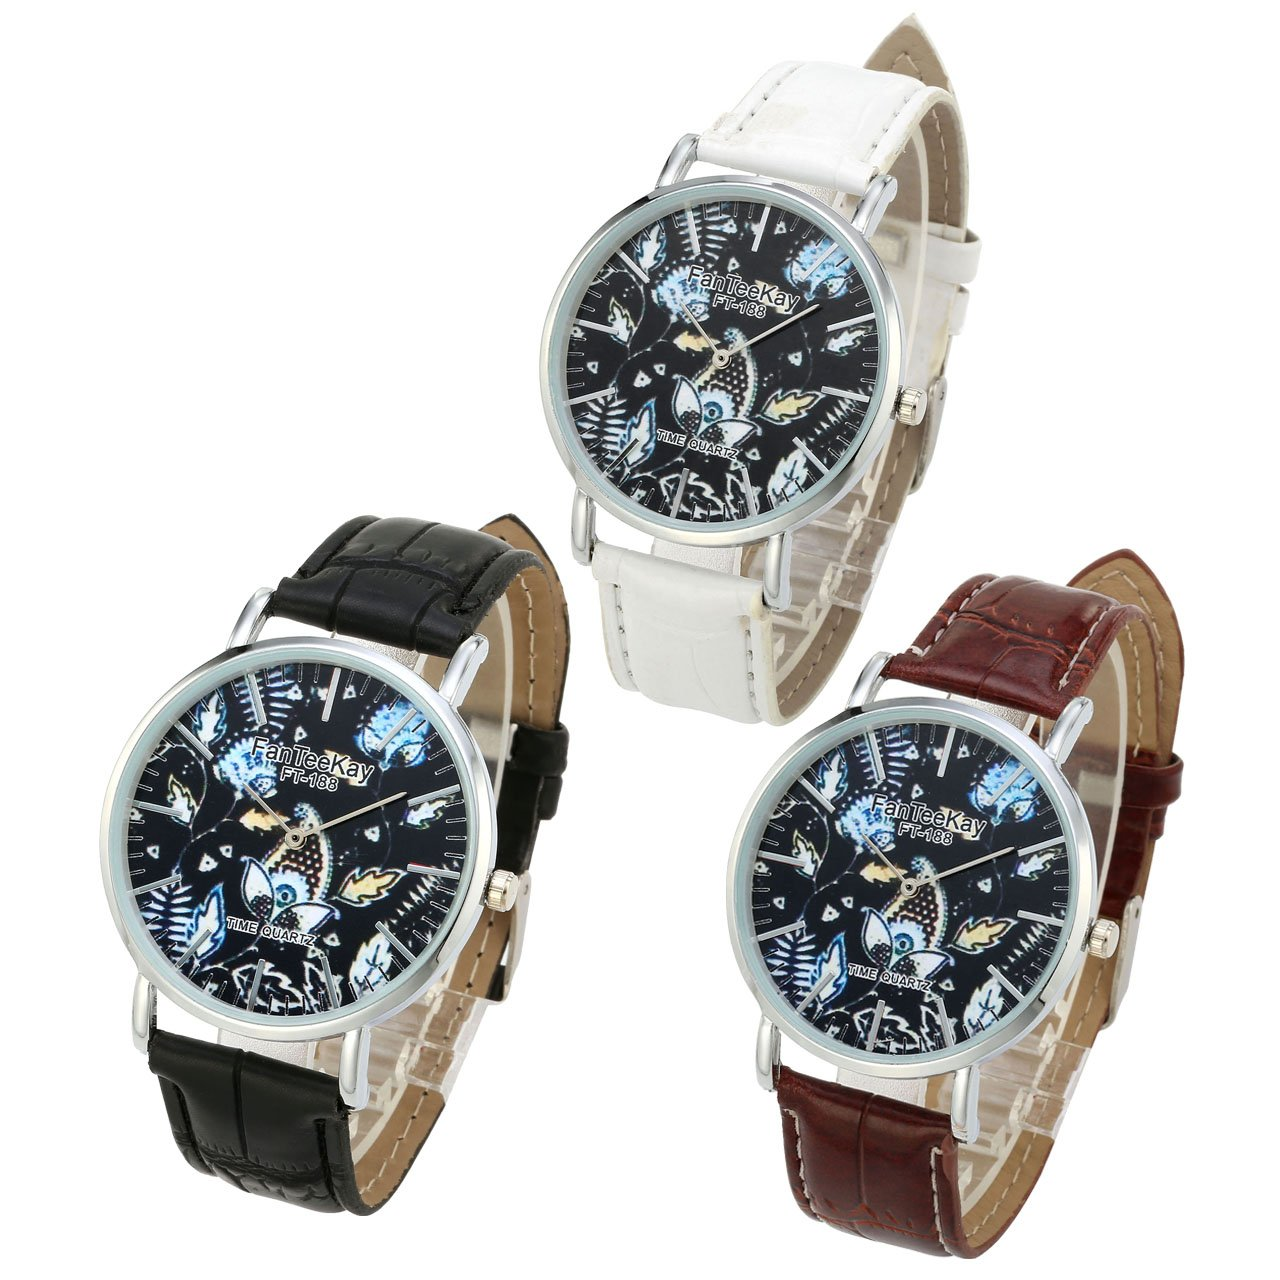 Top Plaza Unisex Simple Casual Silver Tone Analog Watch Flowers and Plants Pattern No Number Dial PU Leather Strap Quartz Watch(Pack of 3)